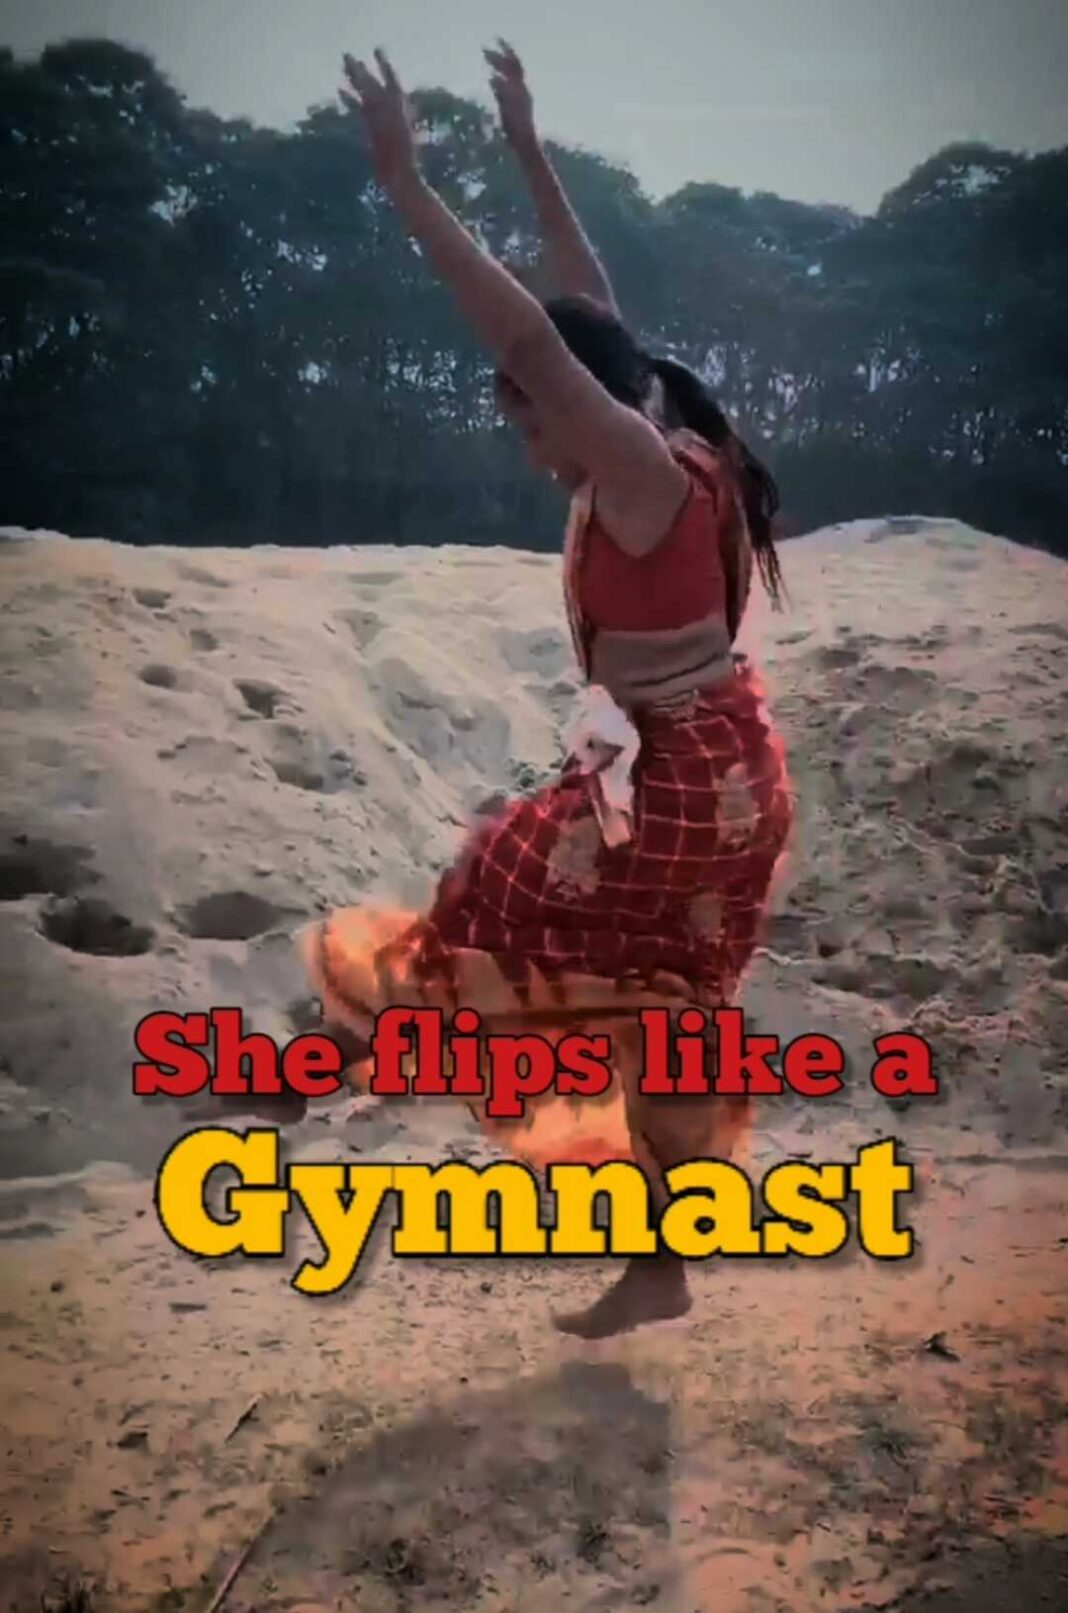 Indian lady showcase her gymnastic skills in saree